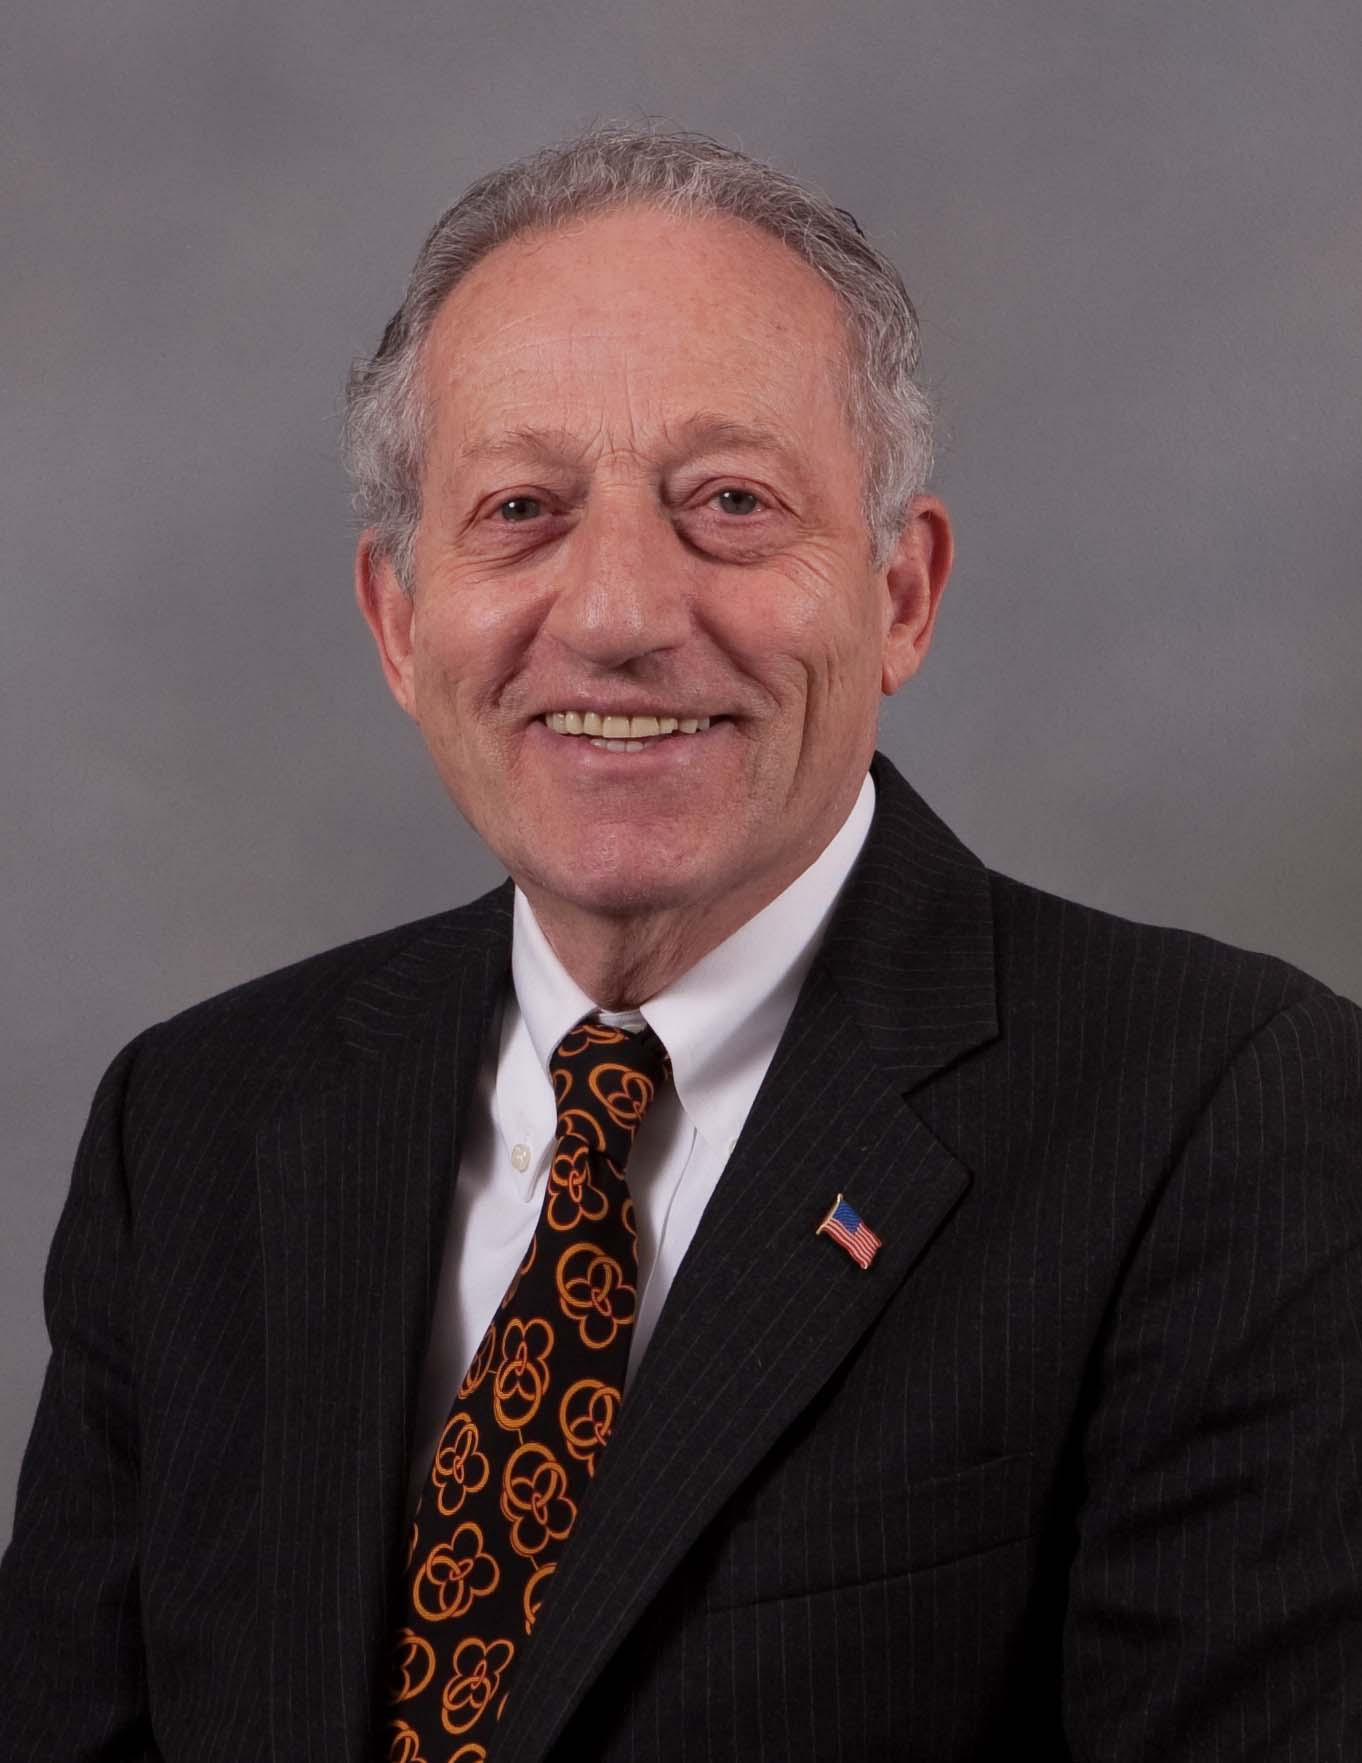 Professional photo of Bob Landau